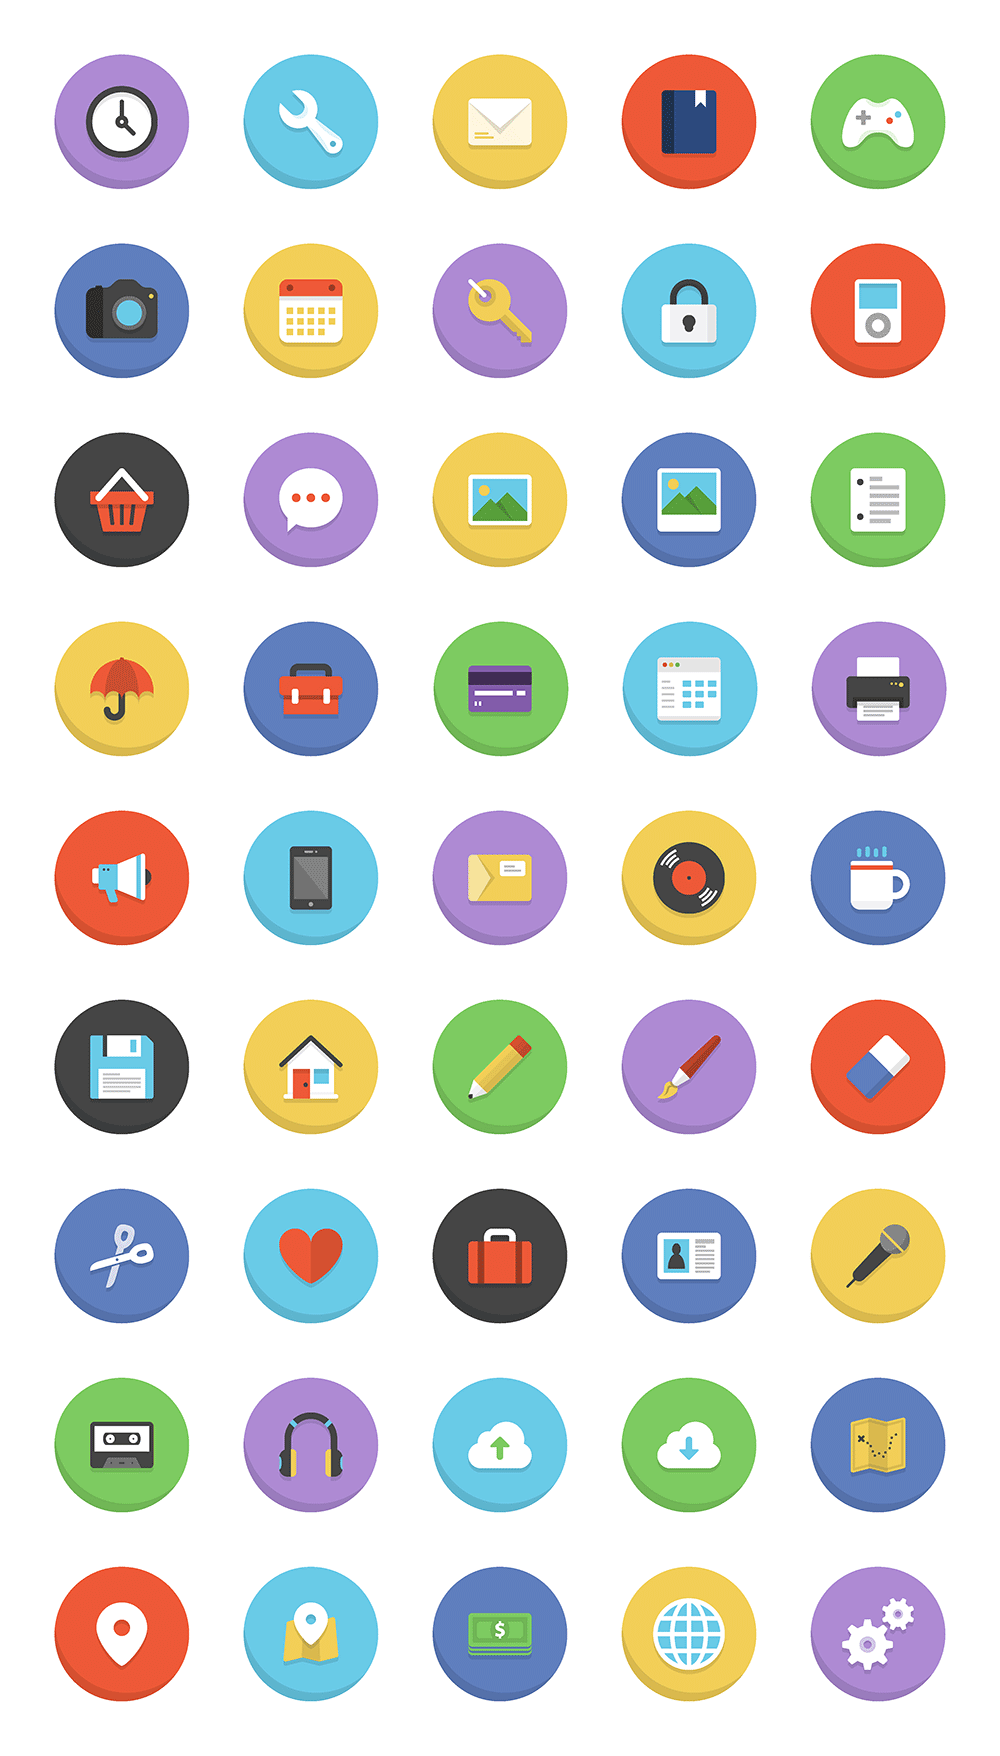 boldons-icon-set-large-full-preview-opt